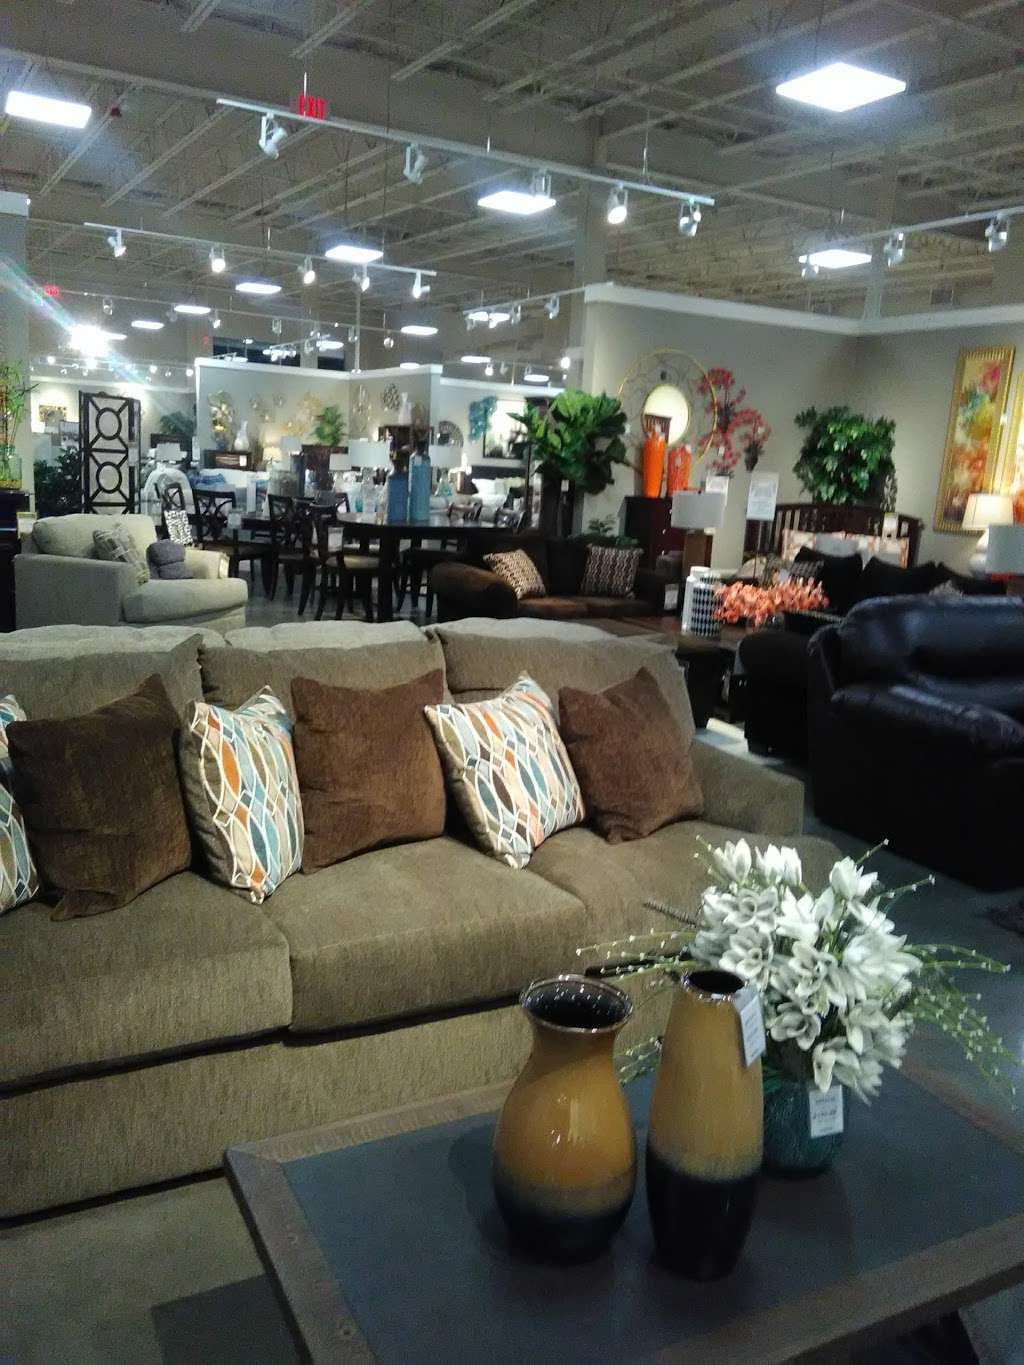 Regency Furniture - furniture store  | Photo 10 of 10 | Address: 1859 Ritchie Station Ct, Walker Mill, MD 20743, USA | Phone: (301) 782-3800